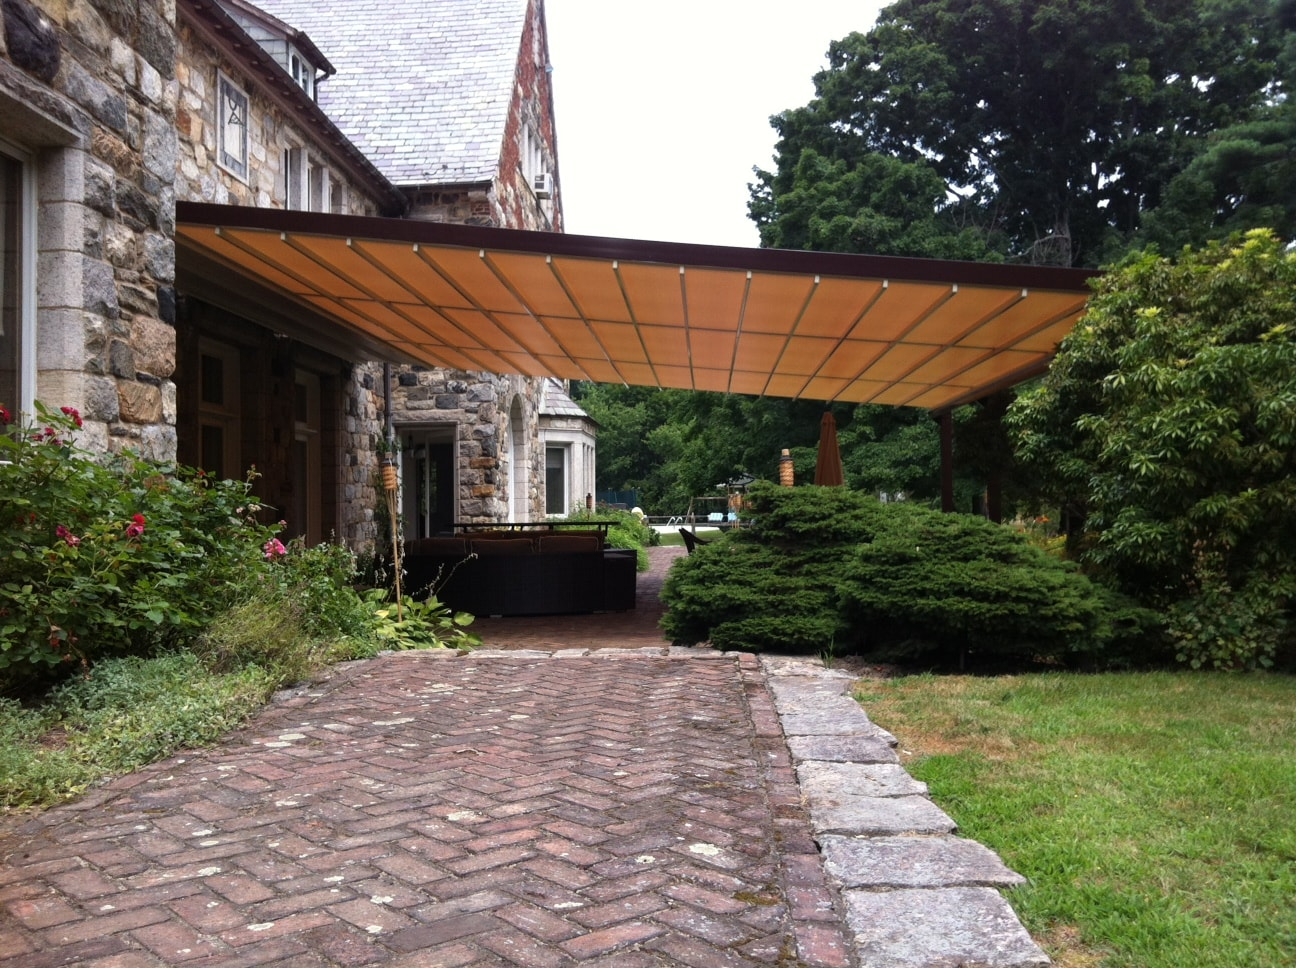 Cover Patio Pergola 7 Patio Cover Ideas For Your Backyard Retractableawnings